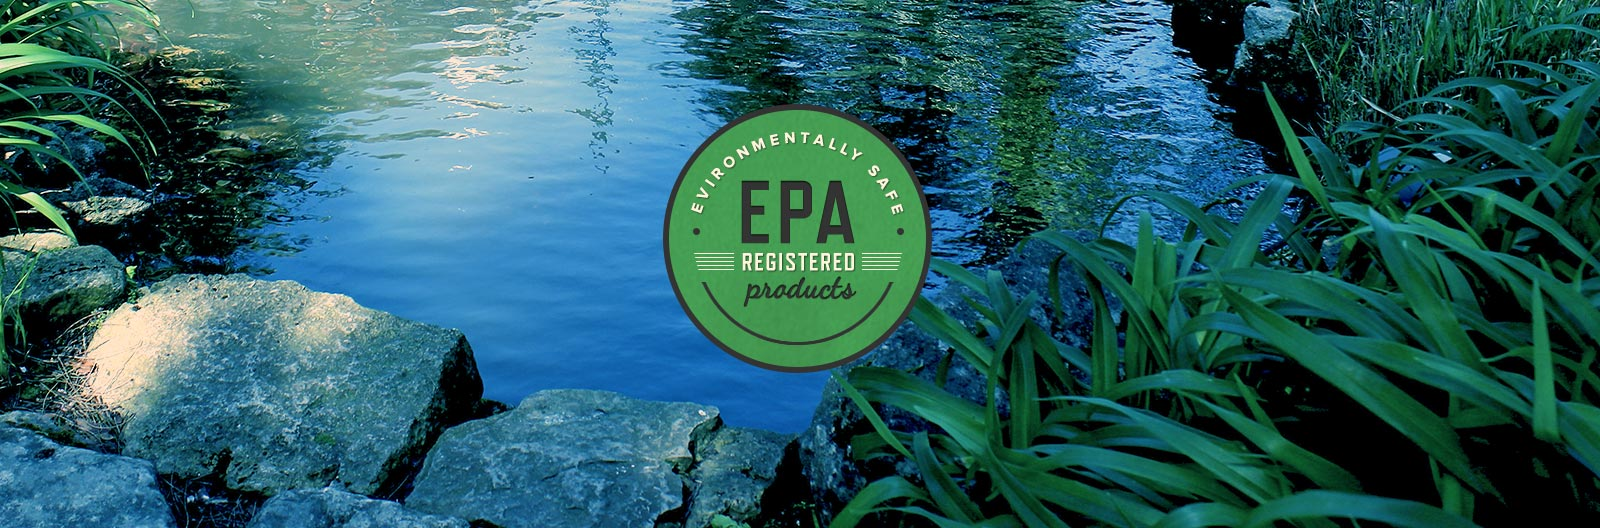 EPA Registered Products